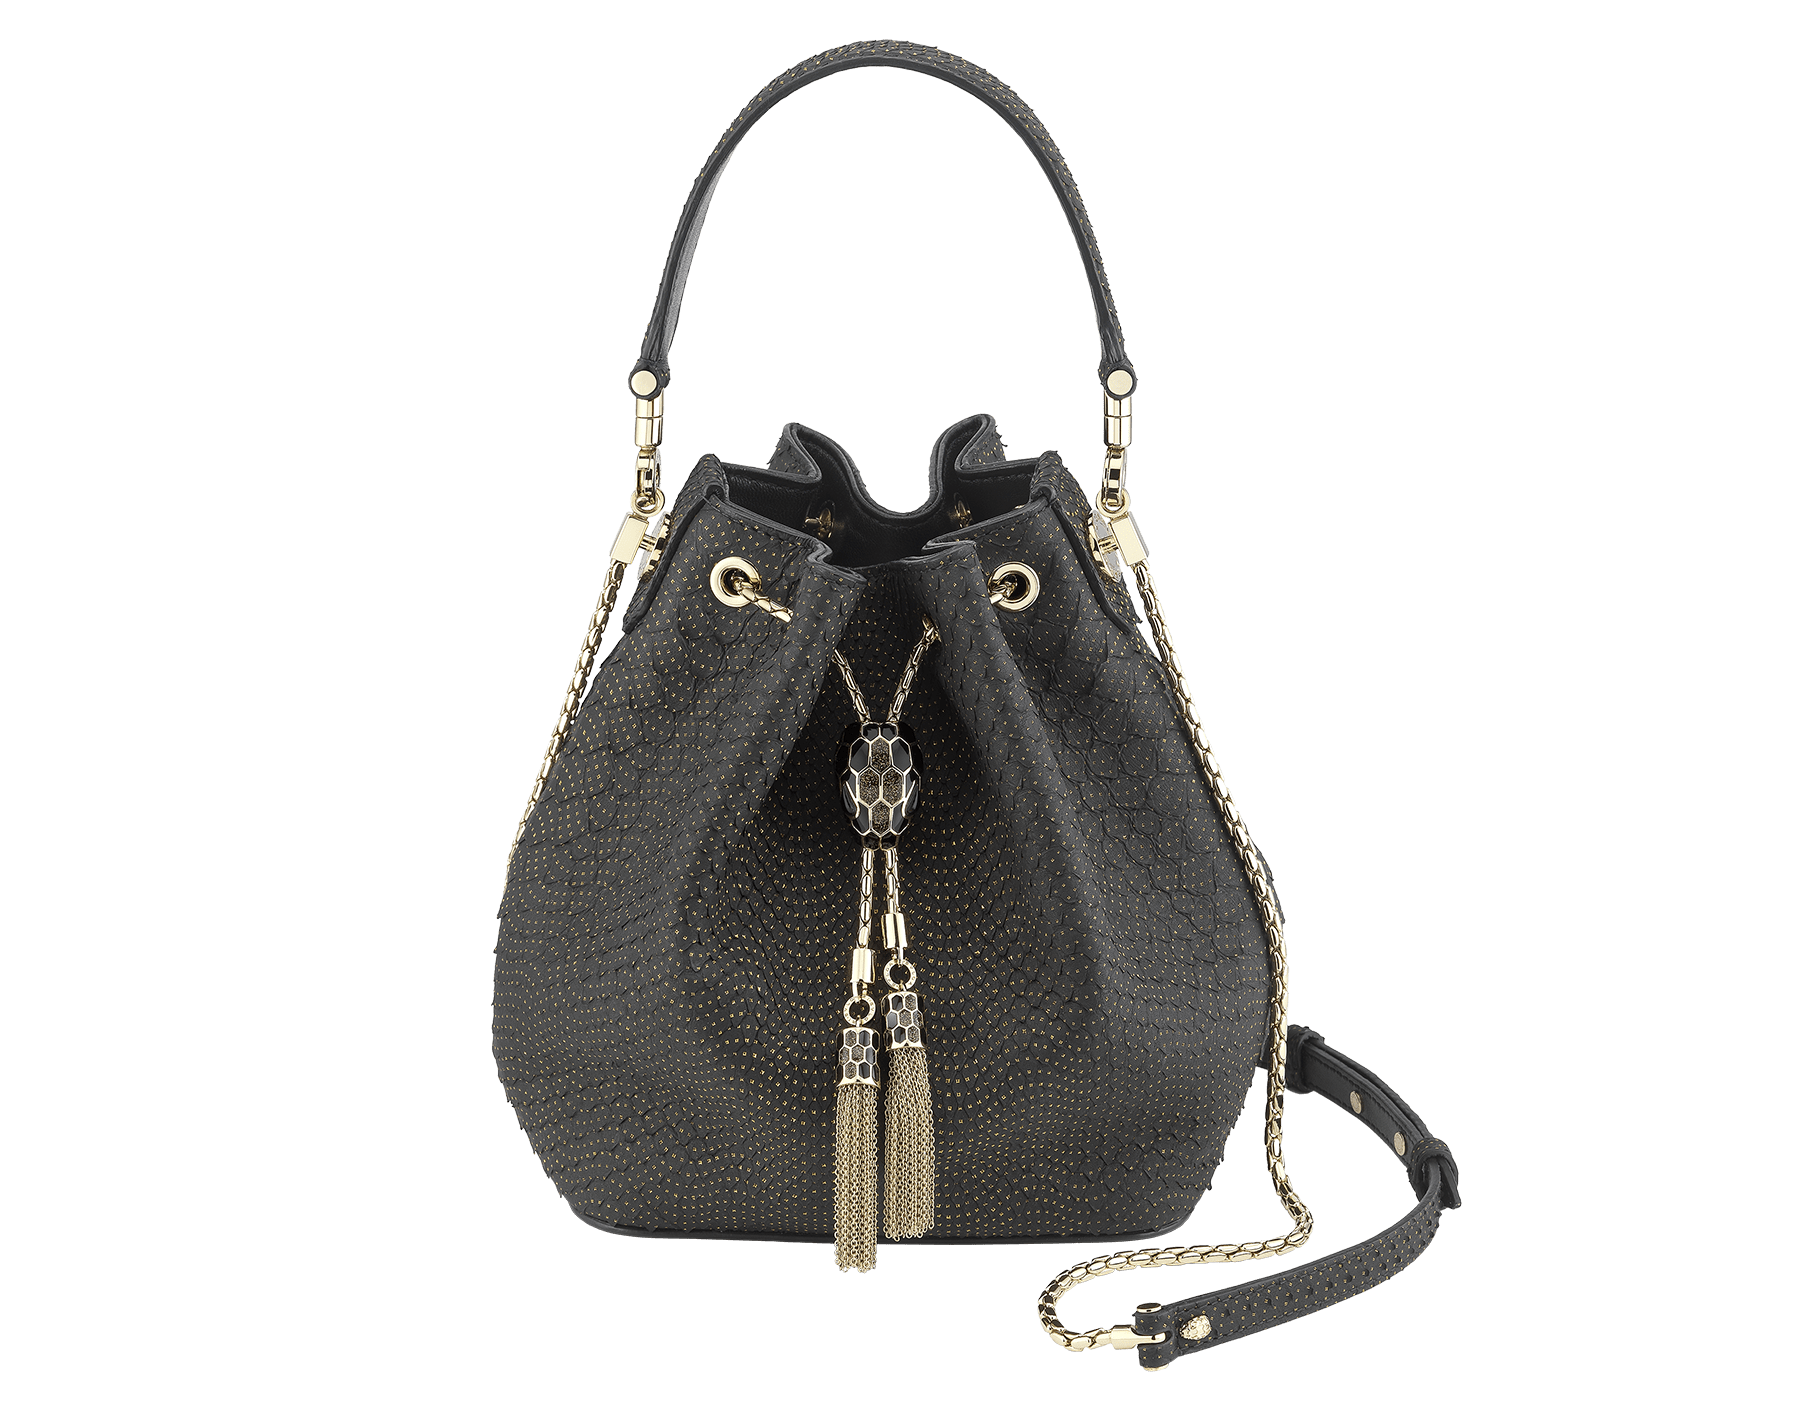 Bucket Serpenti Forever in black Fil Coupé python skin and black nappa internal lining. Hardware in light gold plated brass and snakehead closure in black and glitter bronze enamel, with eyes in black onyx 287436 image 1